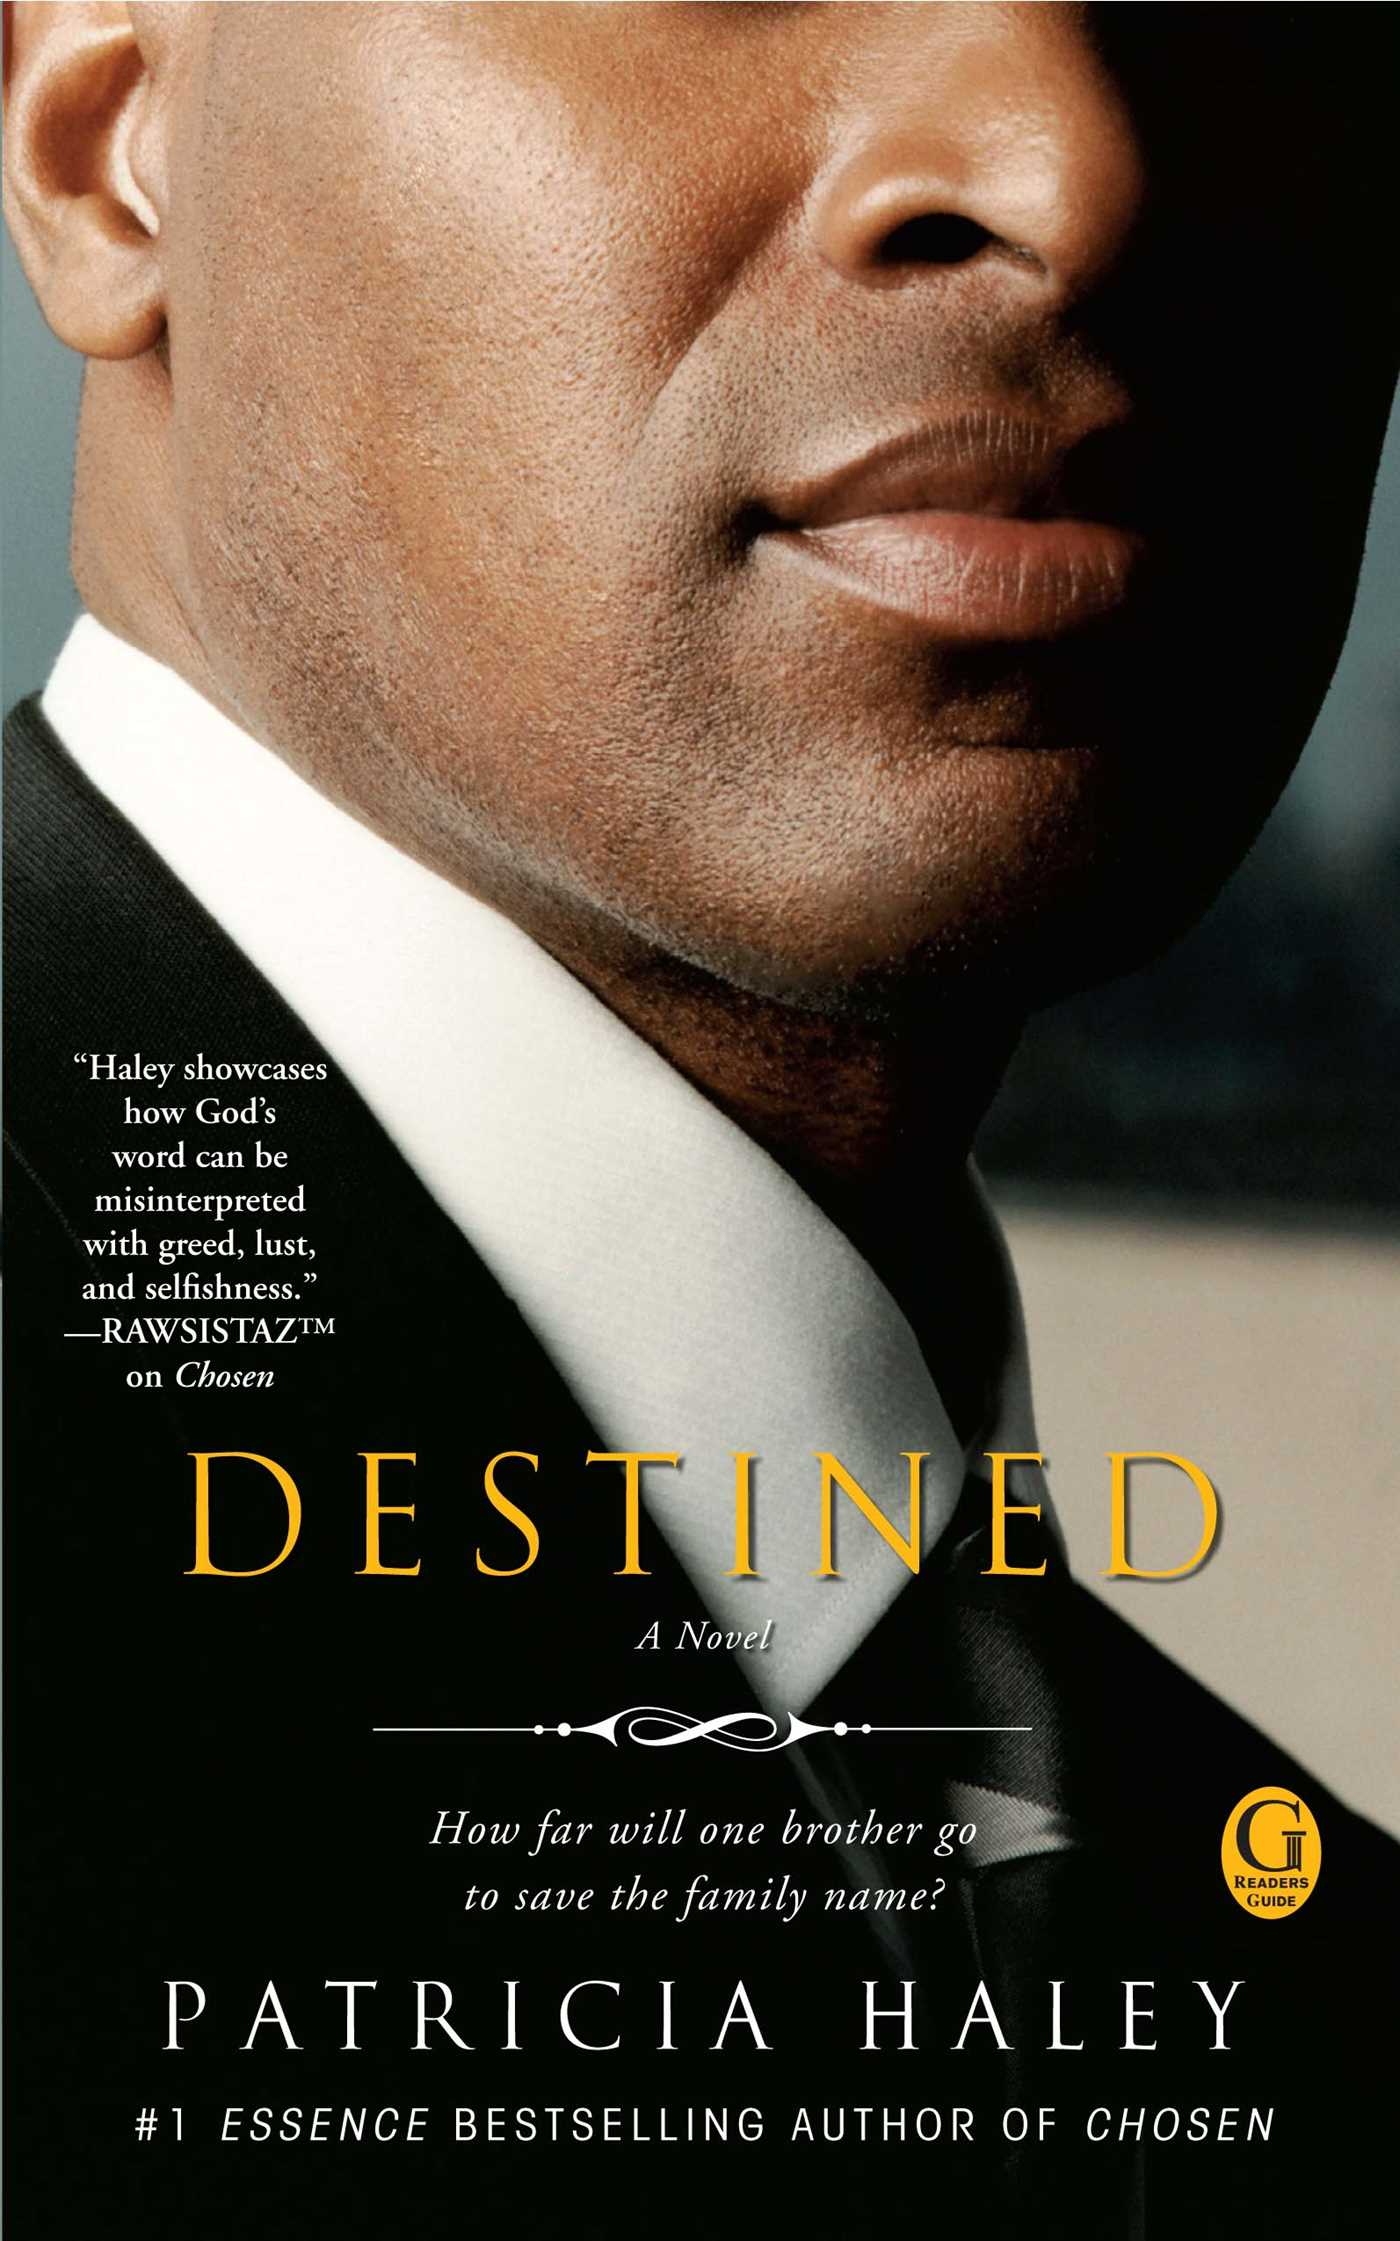 Destined 9781416580638 hr